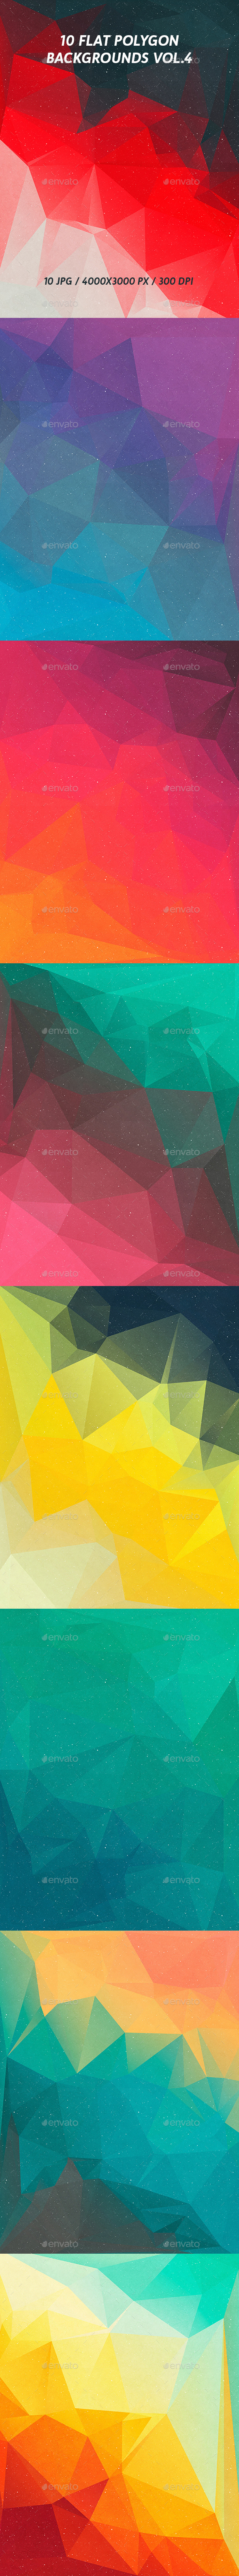 Flat Polygon Backgrounds Vol.4